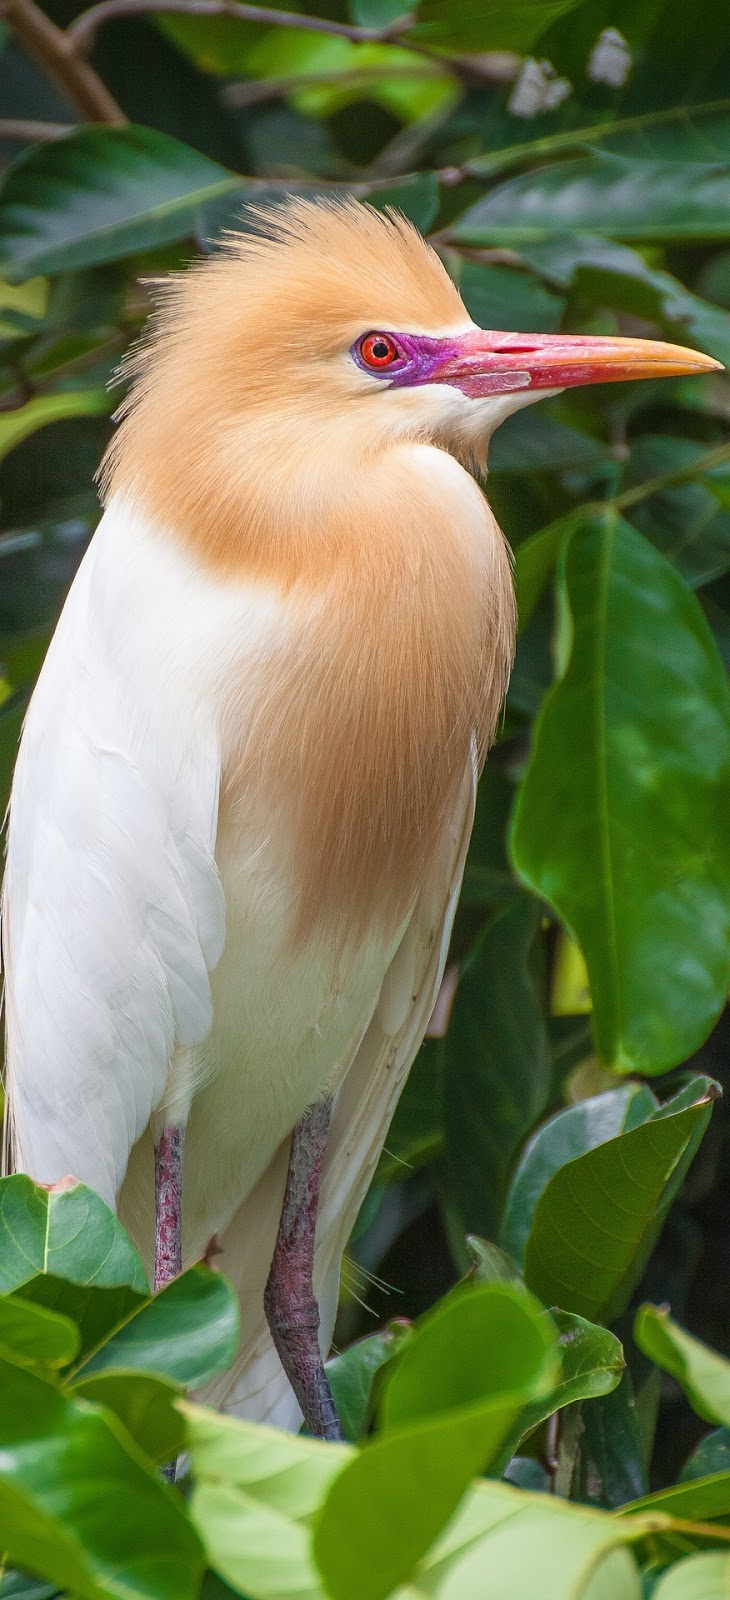 Photo of a cattle egret.